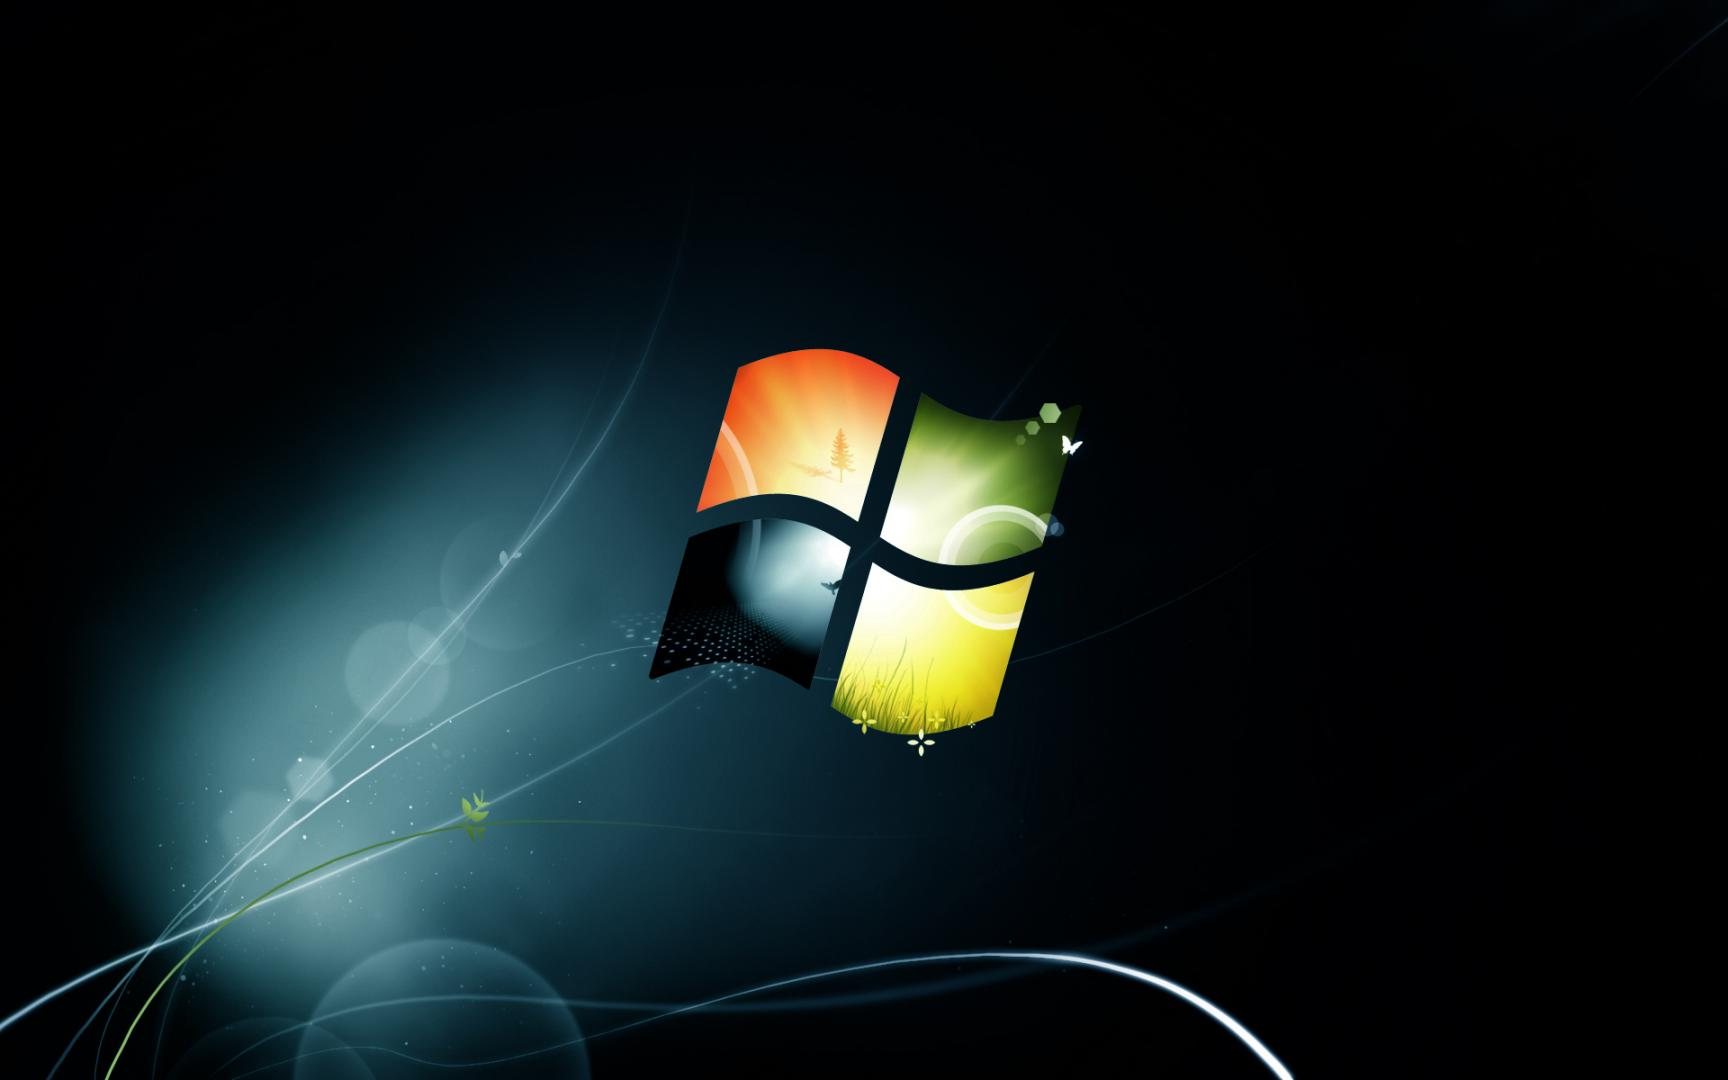 Attached Image: windows_7_wallpaper_by_nando377-d48odg4.jpg